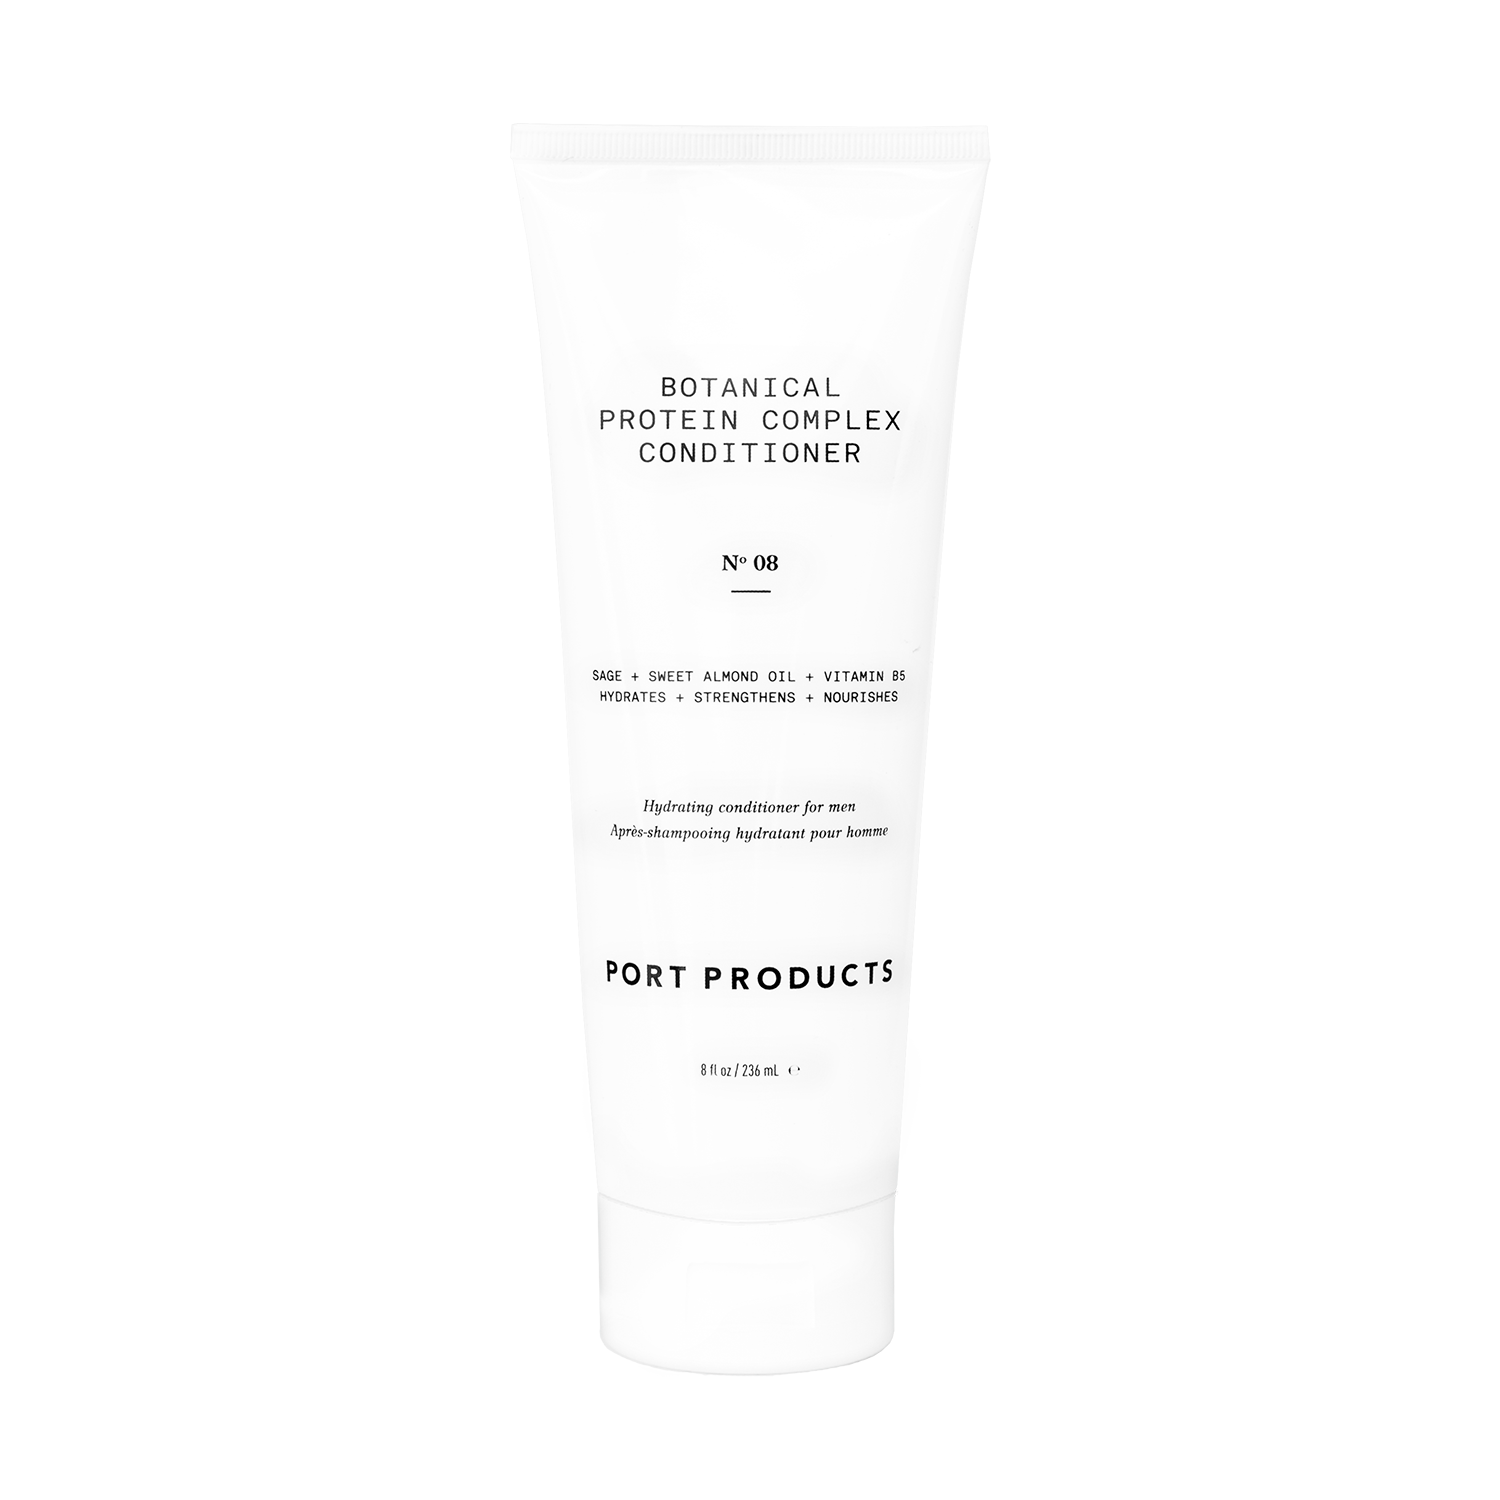 Port Products Botanical Protein Complex Conditioner - The Motley